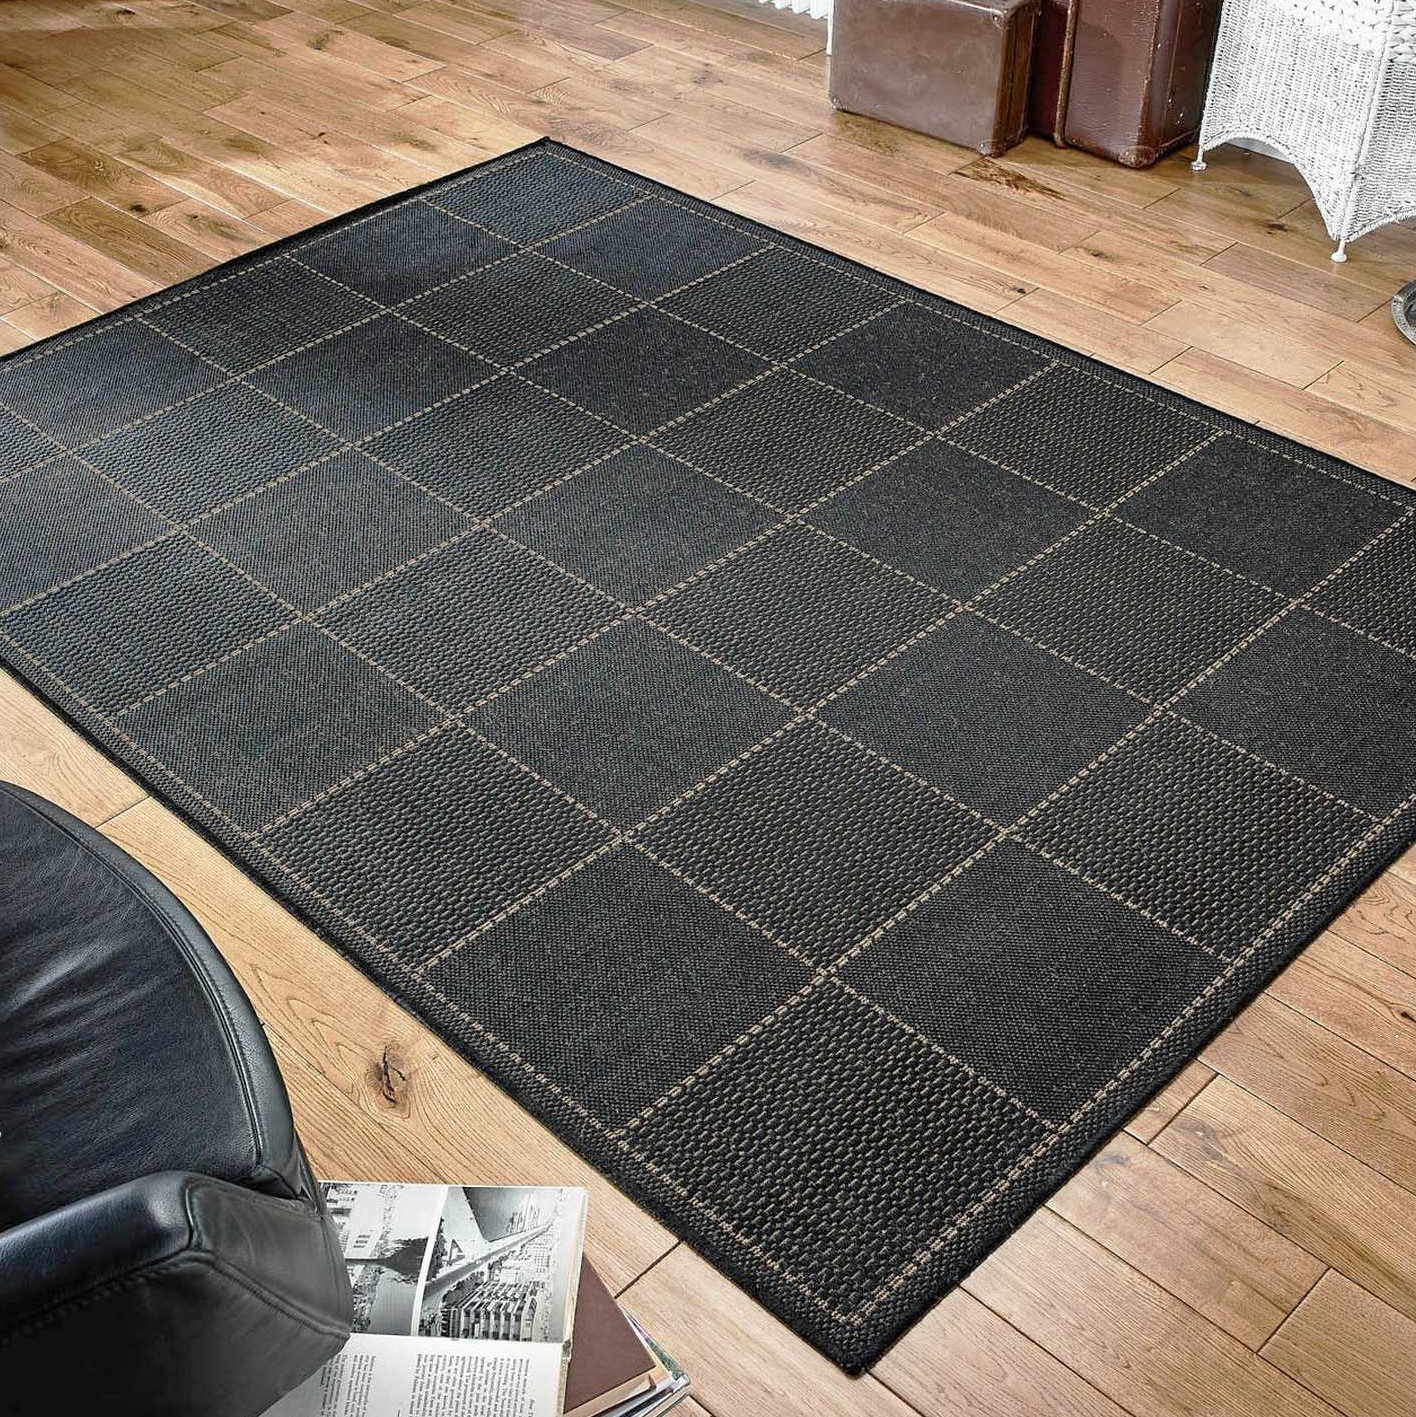 Super Sisalo Anti Slip Kitchen Rugs In Black